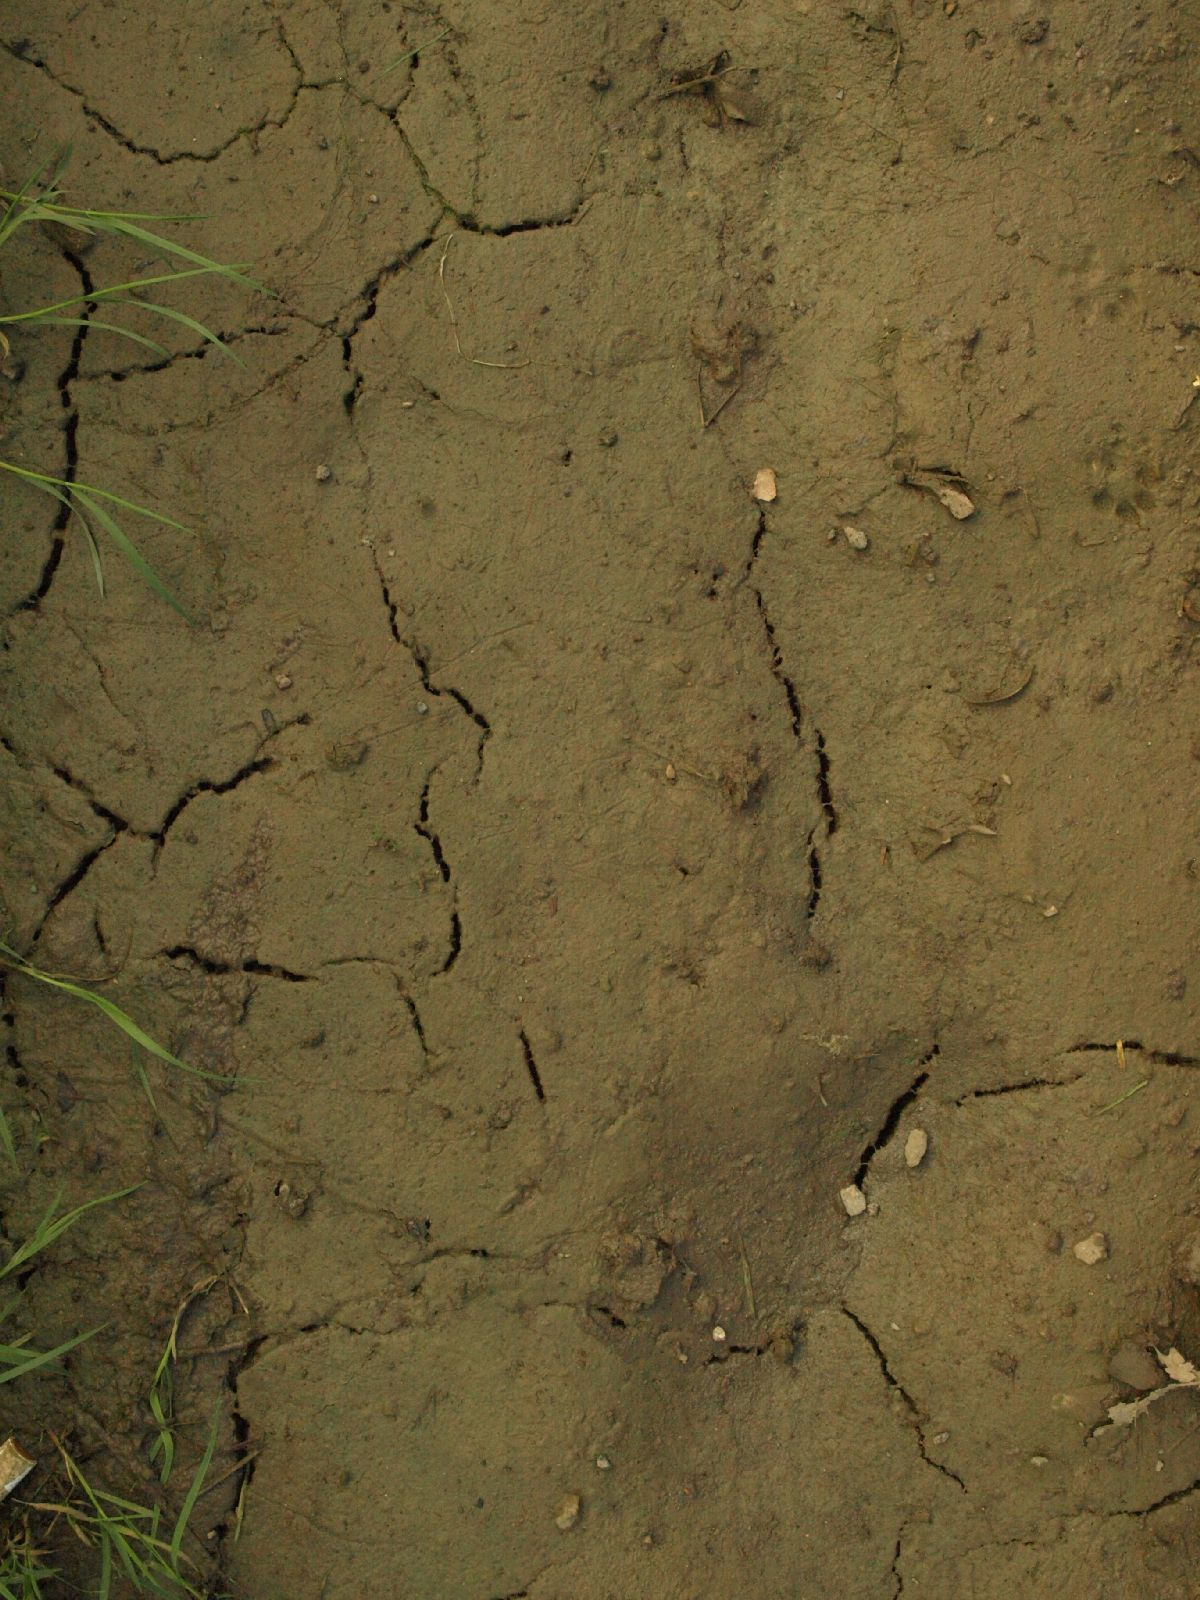 Ground-Nature_Texture_A_P4101910